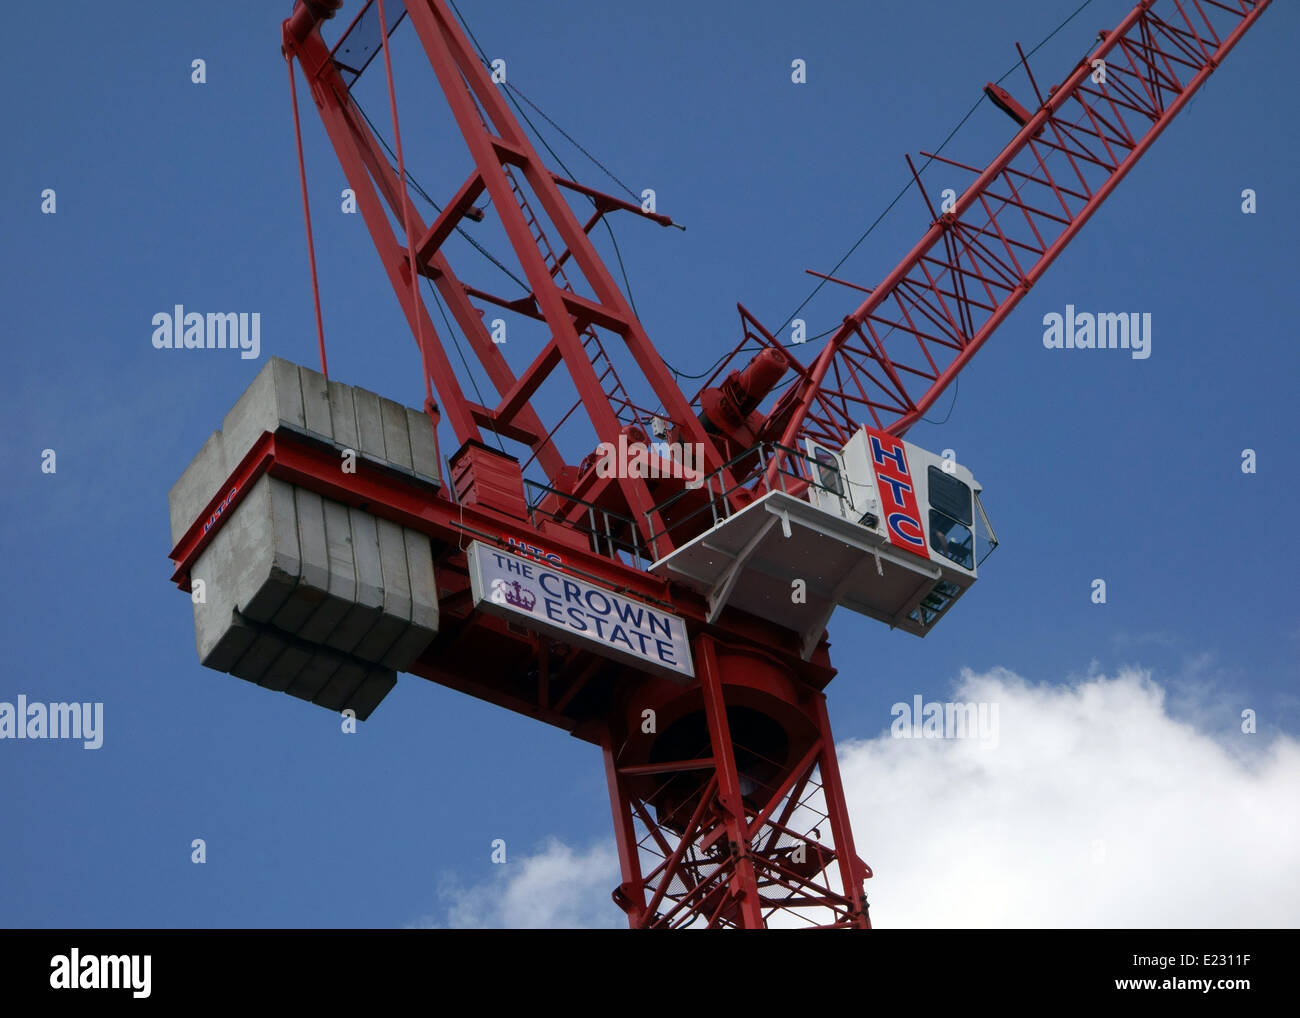 Crane on construction site for The Crown Estate in Central London - Stock Image